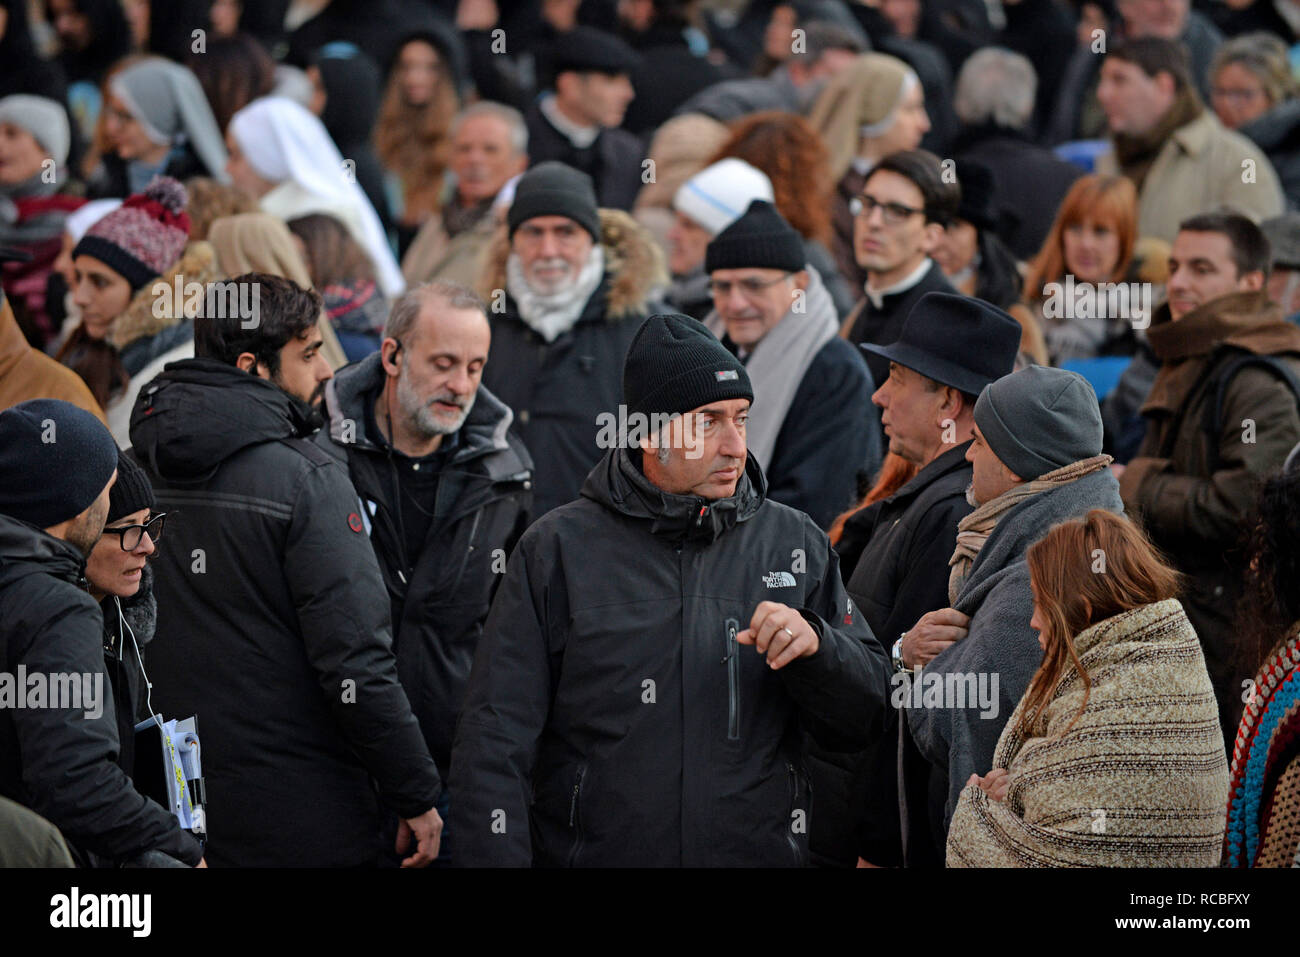 Venice, Italy. 14th January, 2019. The Oscar-winning Italian director Paolo Sorrentino on the set of the TV movie 'The New Pope', in San Giovanni and Paolo square, Venice, 14 January 2019. Andrea Merola / Awakening / Alamy Live News - Stock Image